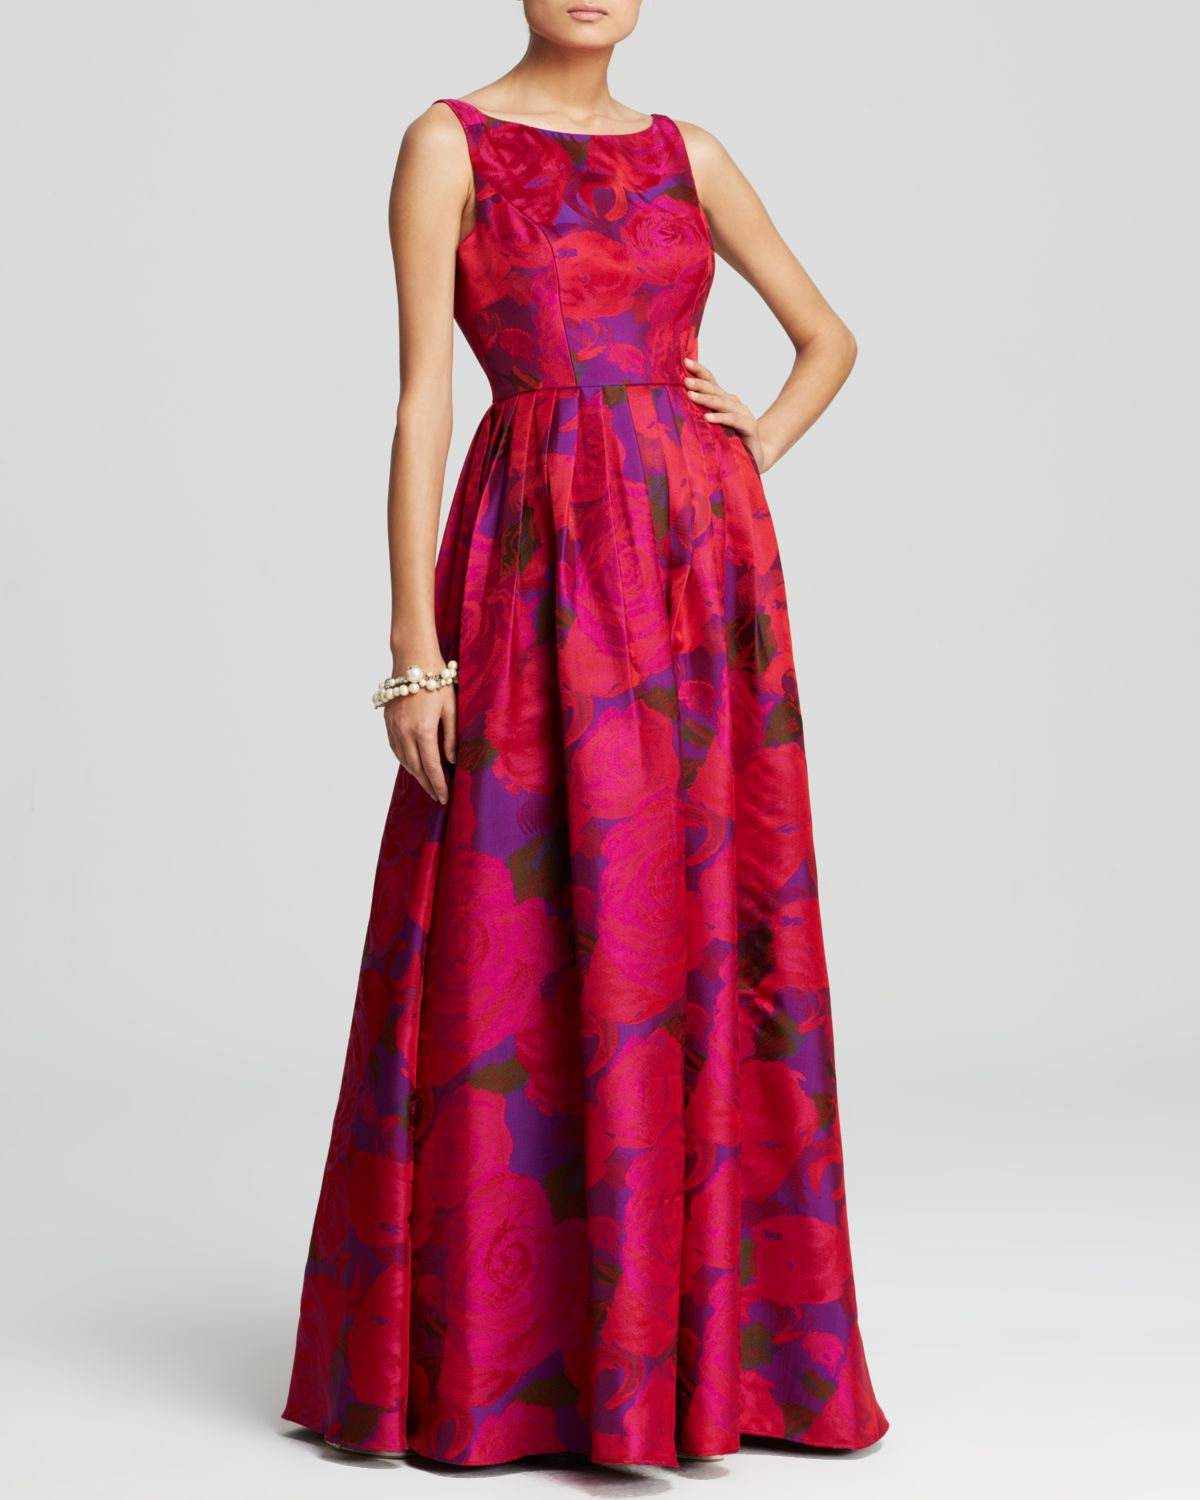 Adrianna Papell Gown Sleeveless Floral Print Ball In